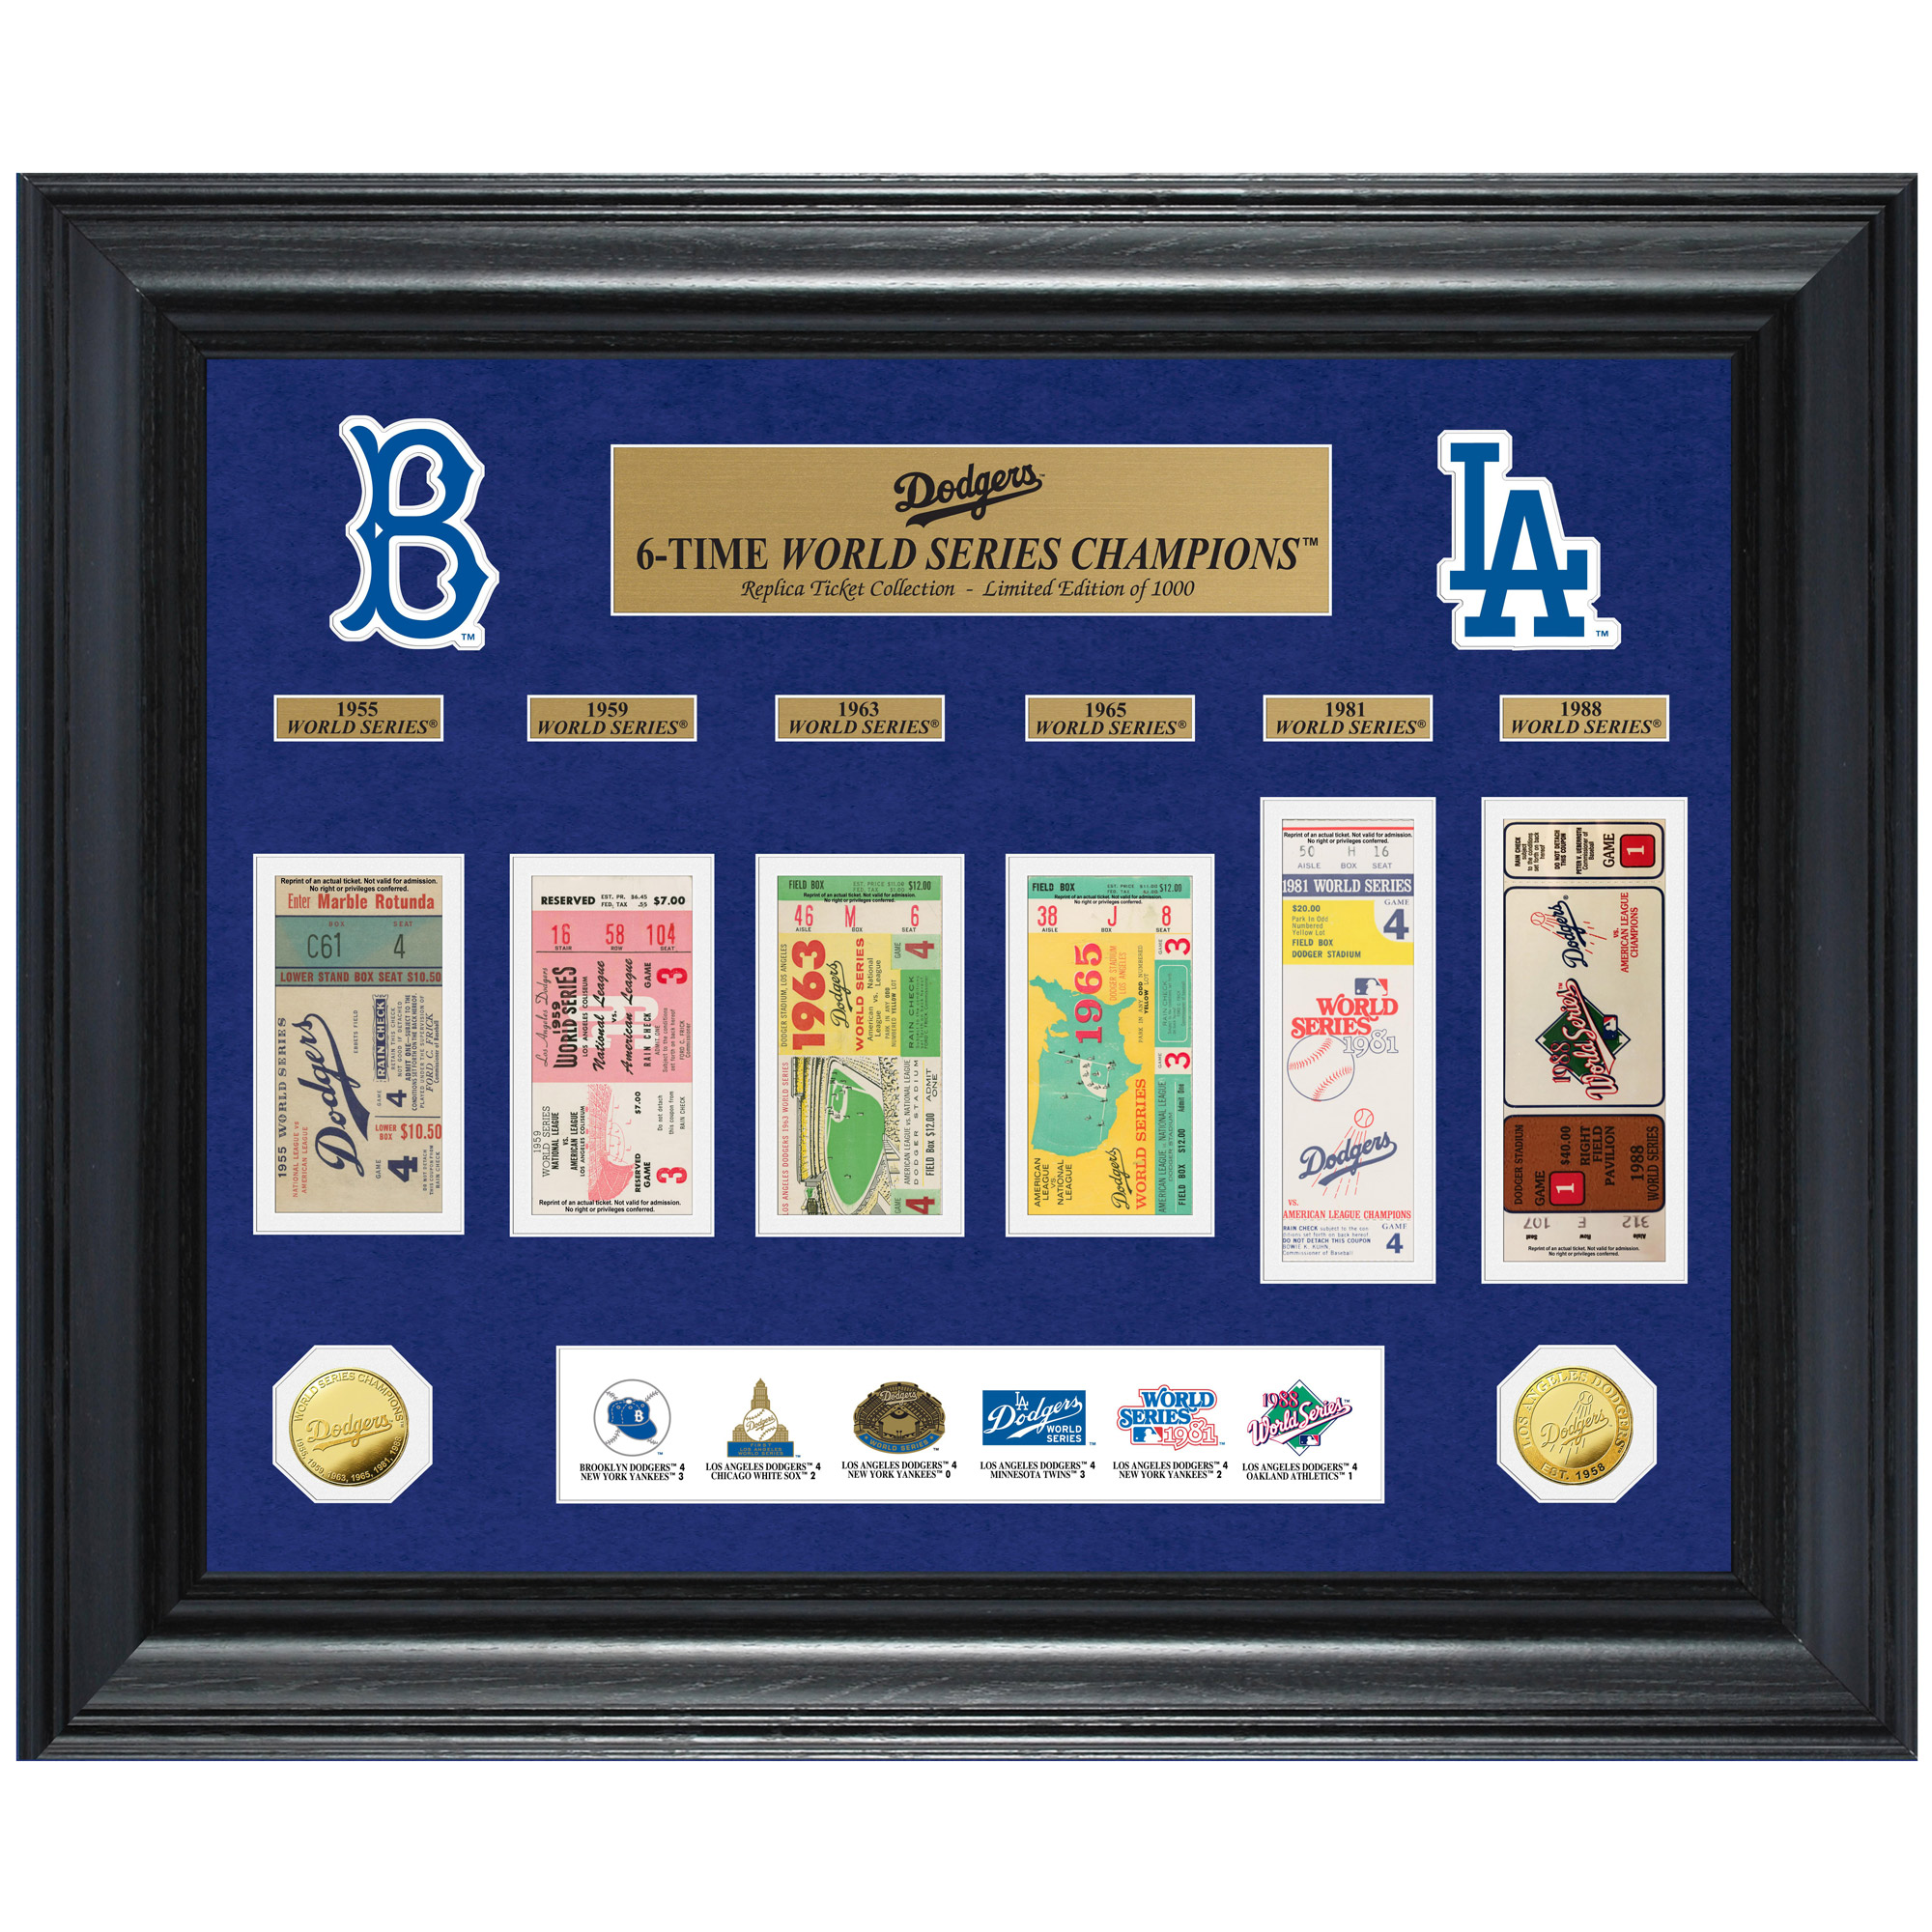 "Los Angeles Dodgers Highland Mint 24"" x 20"" 6-Time World Series Champions Deluxe Coin & Ticket Collection Photo Mint - No Size"